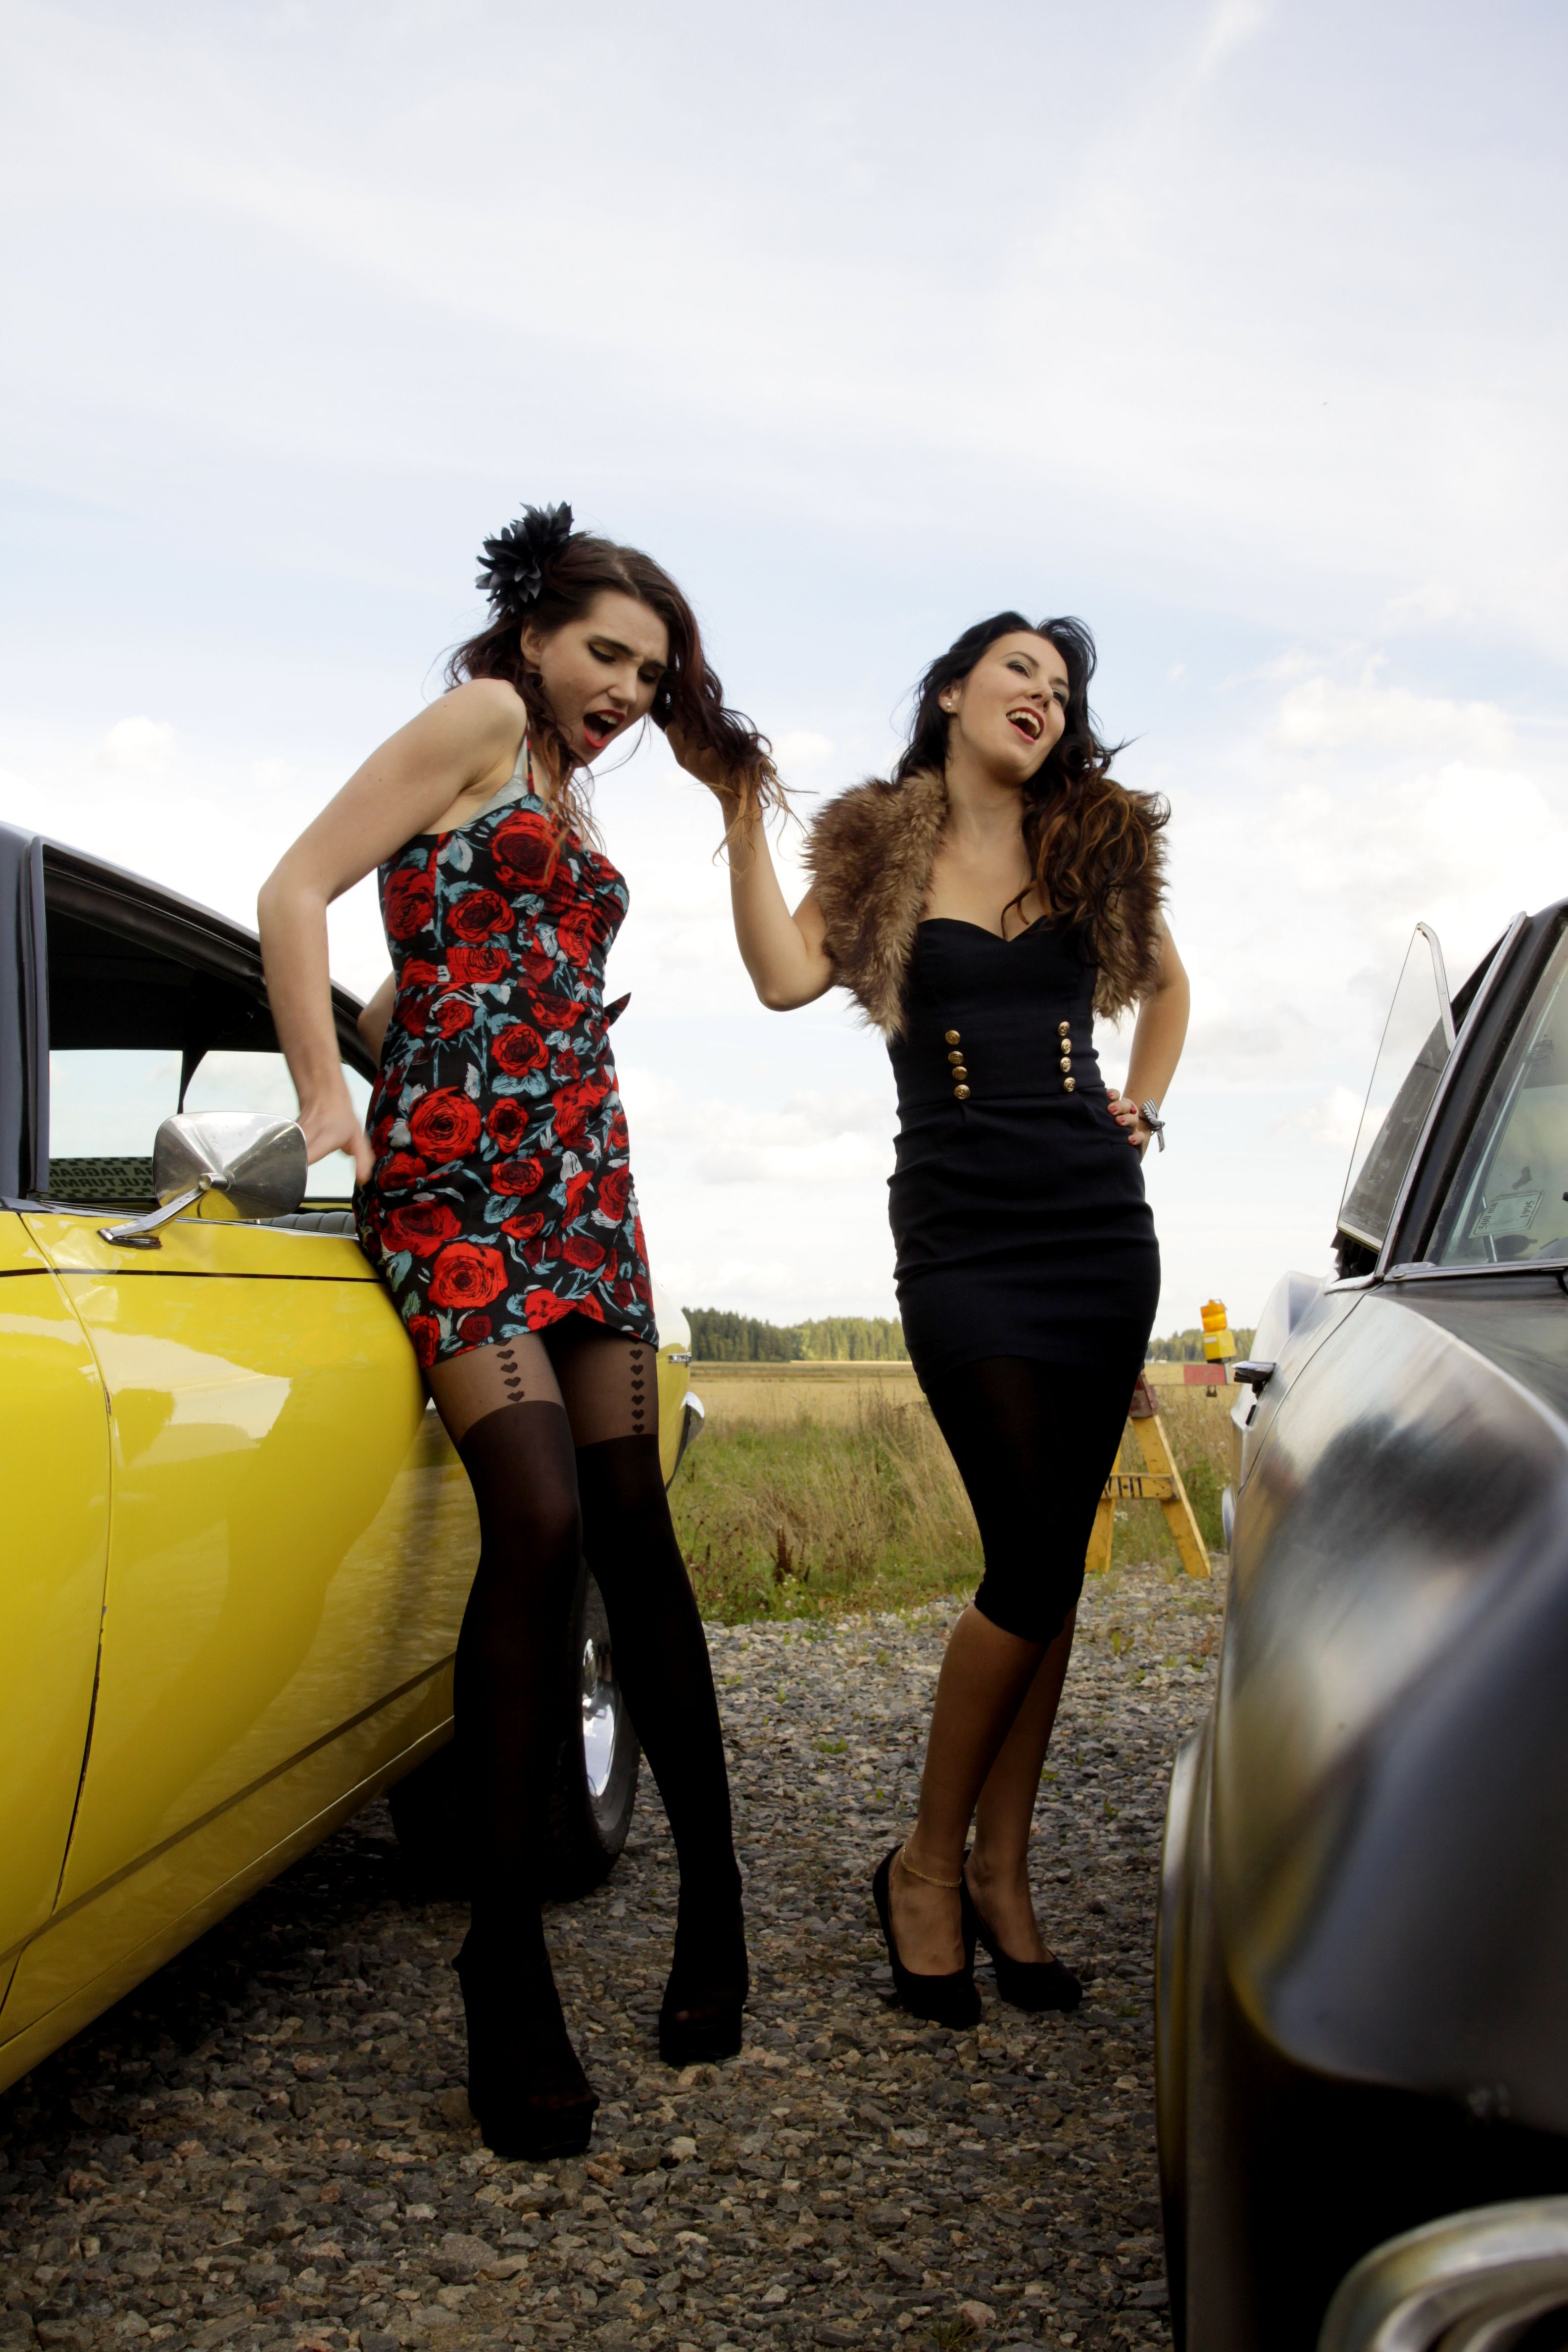 Catfight At The Race Cars And Pin Up Girls My Stuff Pinterest